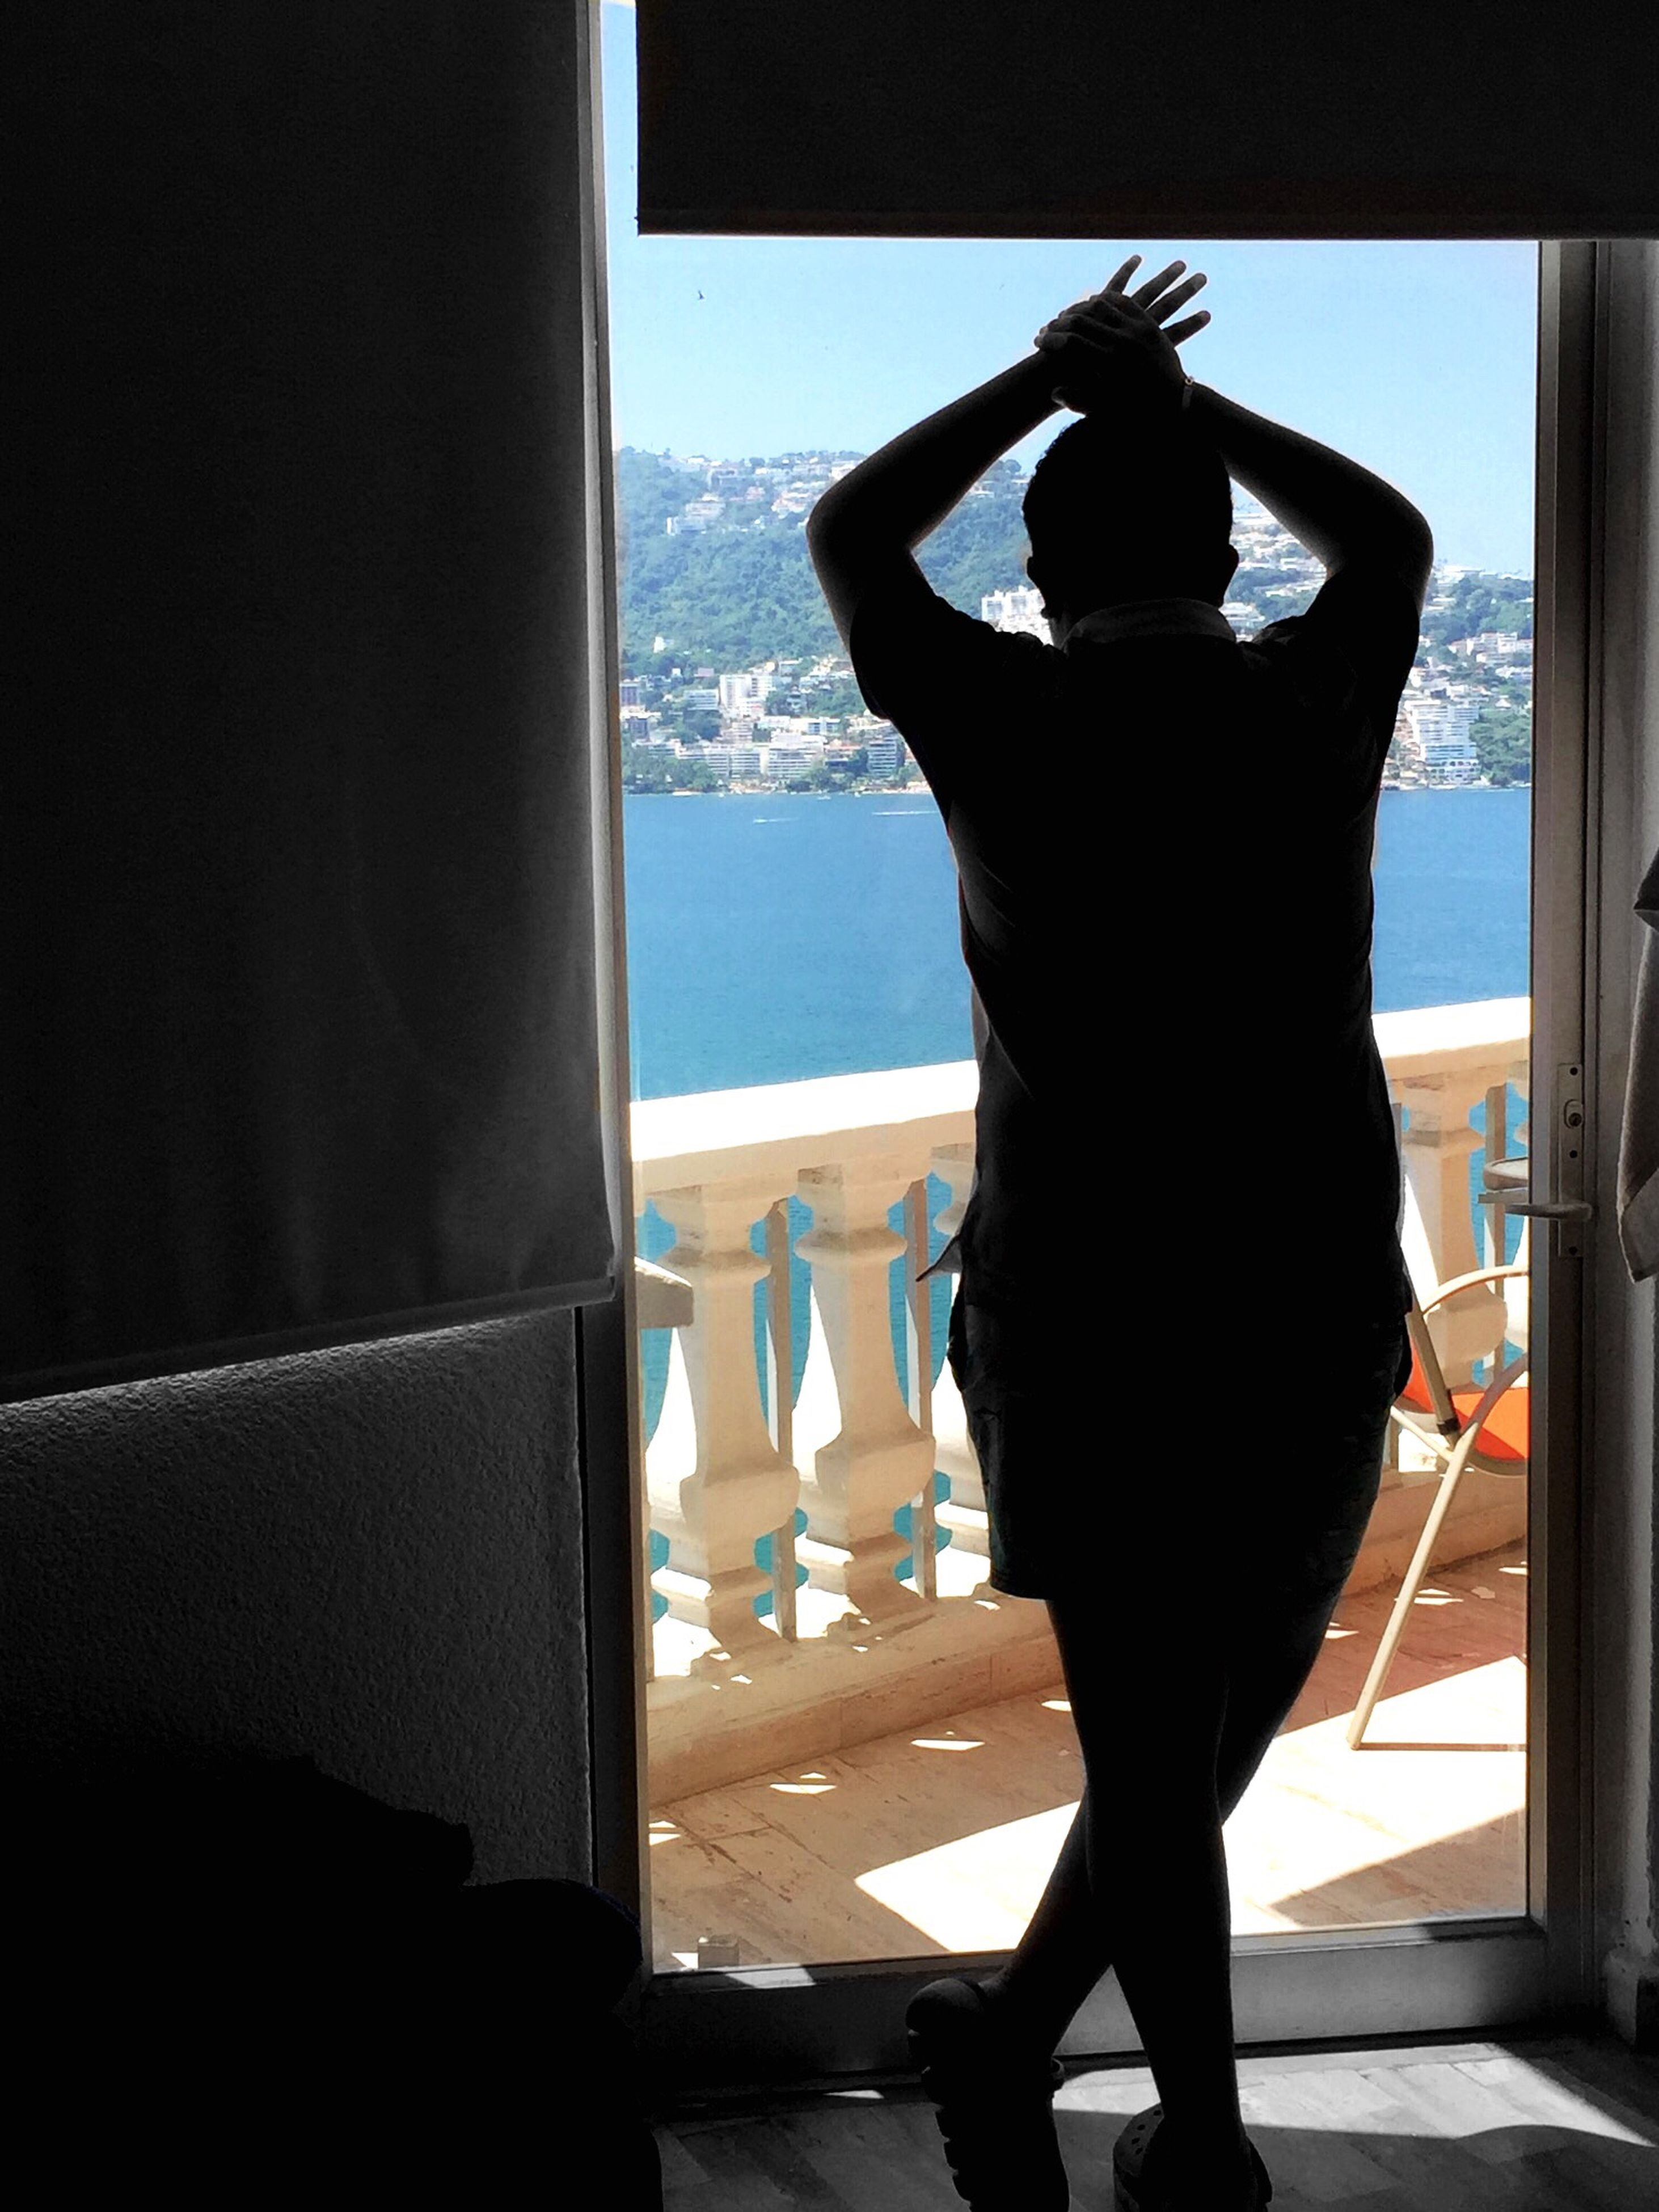 indoors, window, standing, rear view, glass - material, silhouette, looking through window, transparent, full length, sea, home interior, in front of, water, mountain, curiosity, day, nature, domestic life, drapes